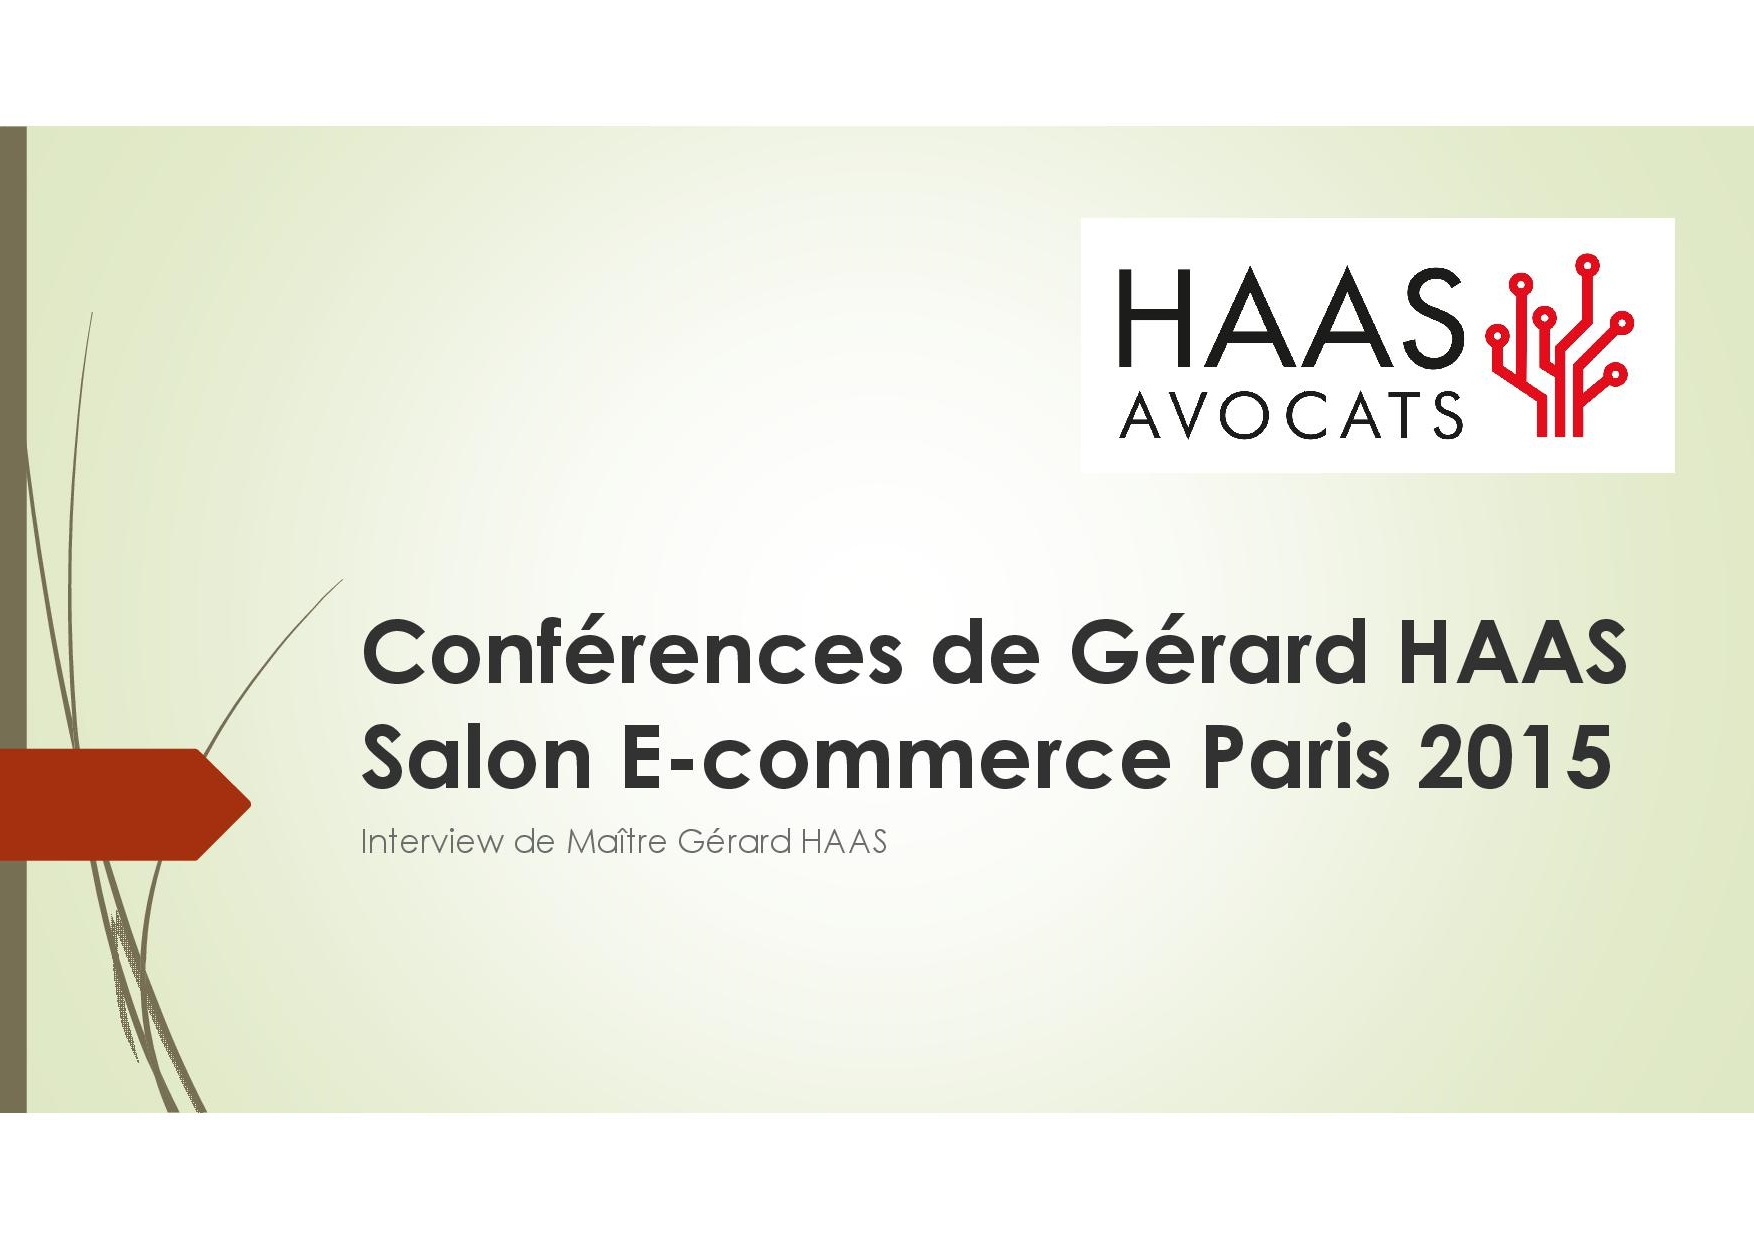 Conf rences de g rard haas salon e commerce paris 2015 for Salon des ce paris 2015